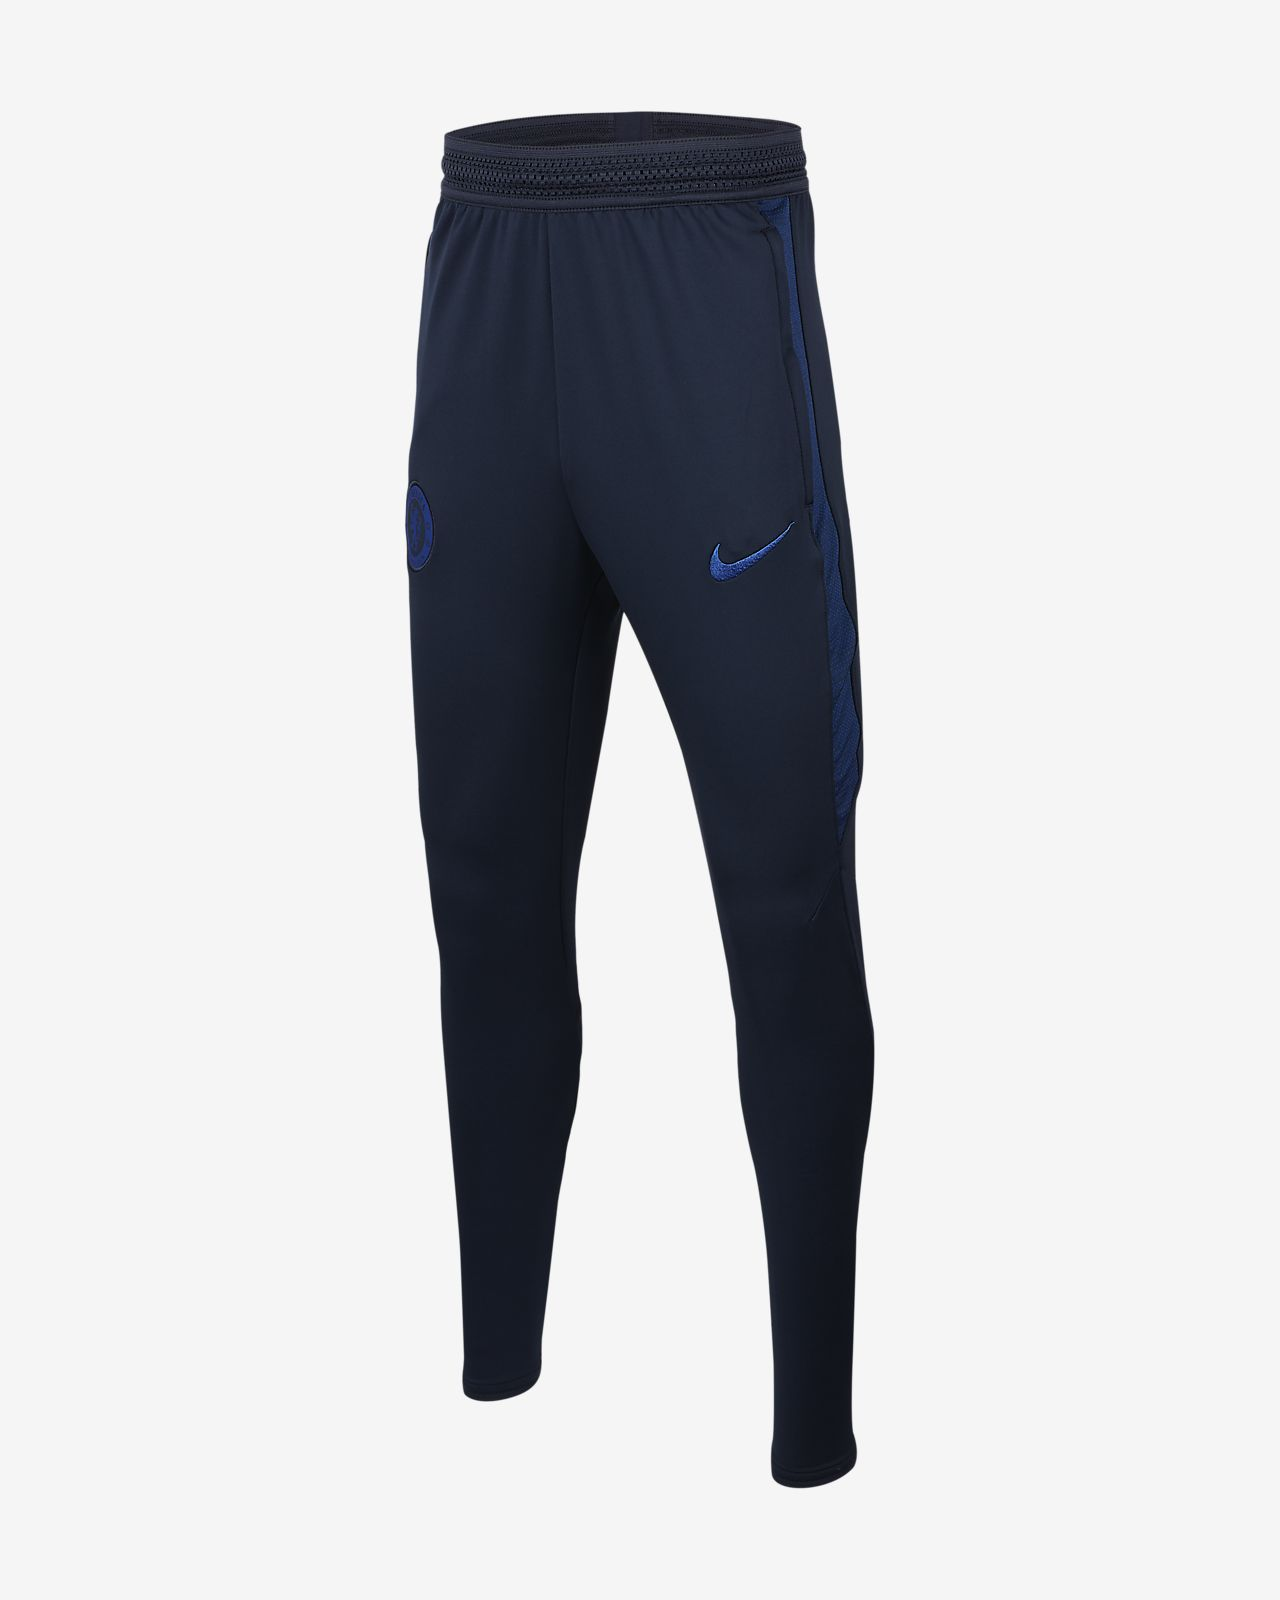 Pantalon de football Nike Dri-FIT Chelsea FC Strike pour Enfant